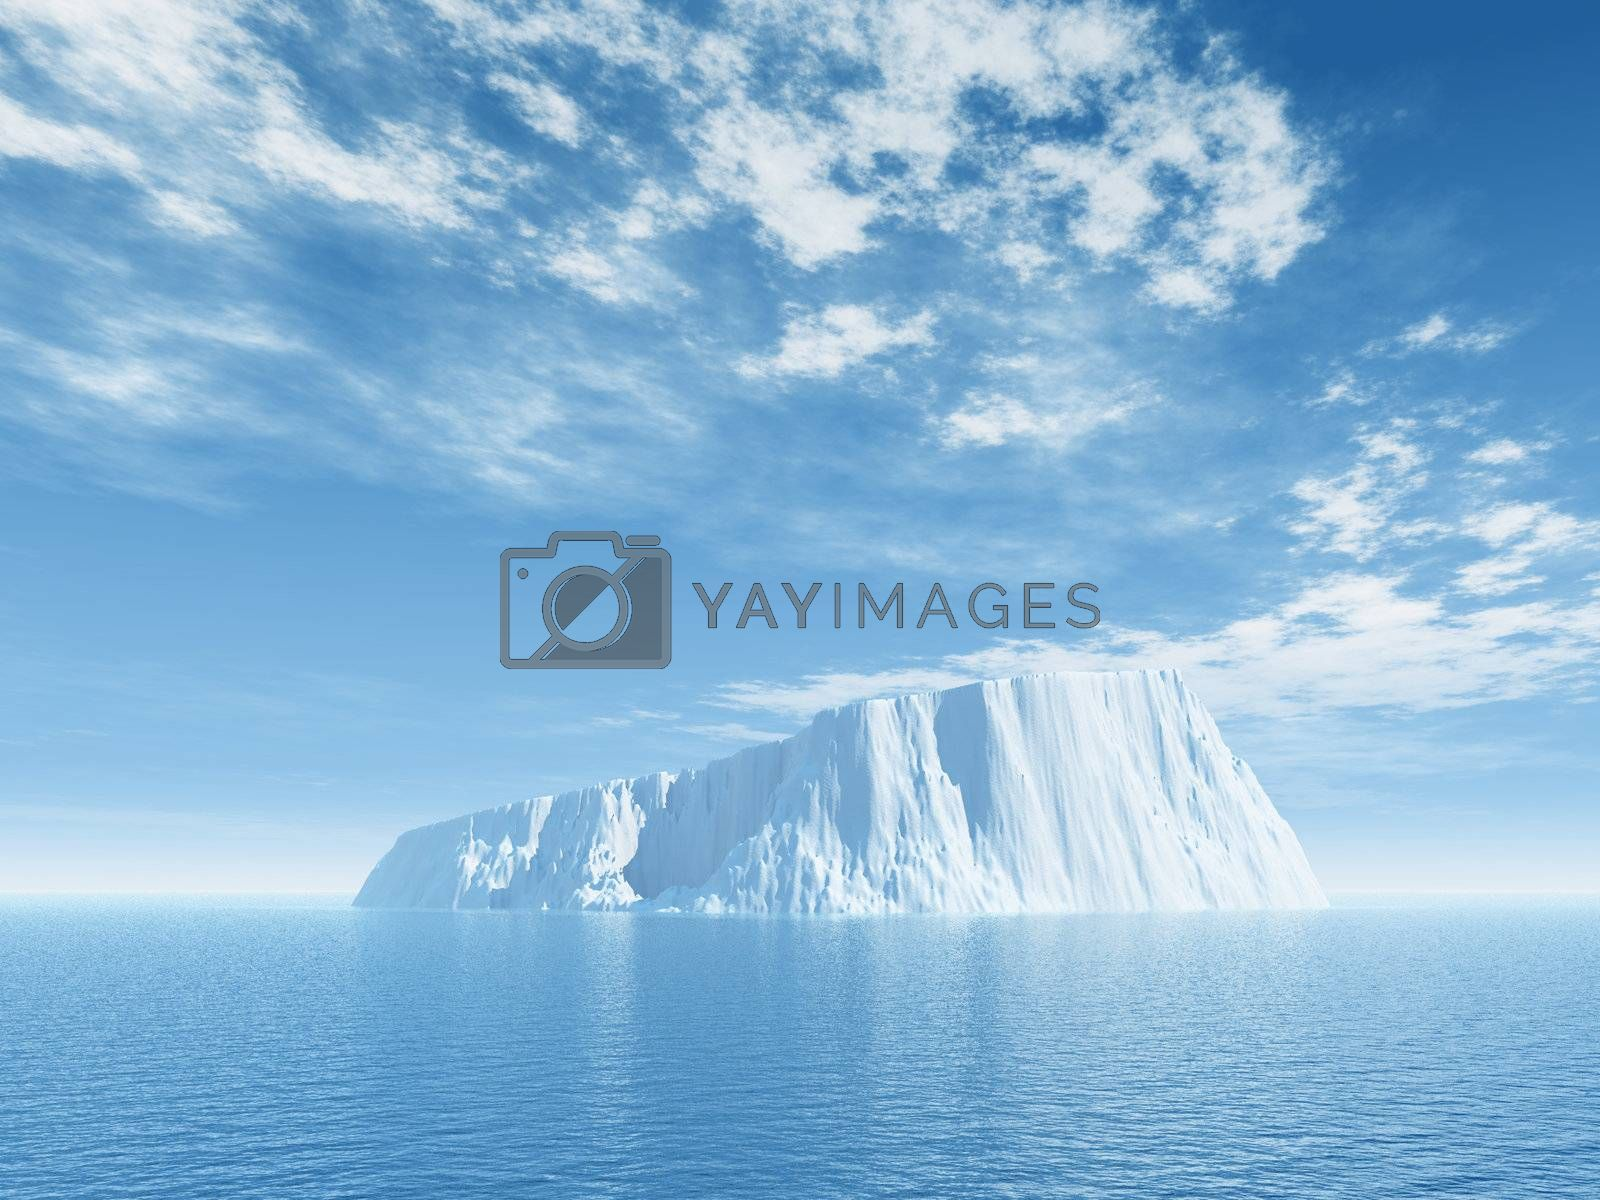 Royalty free image of ice by drizzd